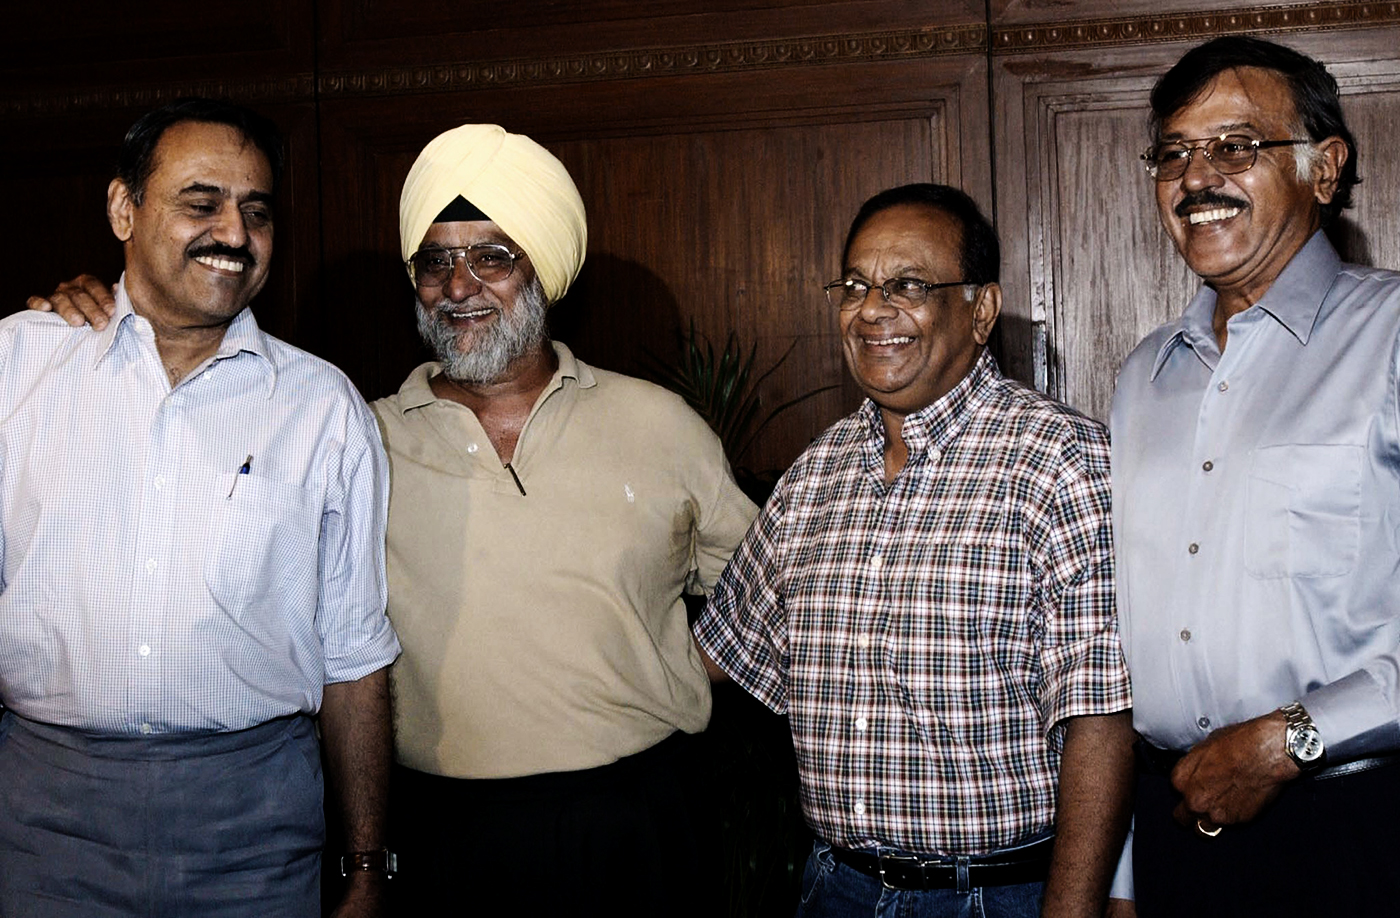 Bhagwath Chandrasekhar, Bishan Bedi, Erapalli Prasanna and Srinivas Venkataraghavan pose during a spinners' meet in Kolkata